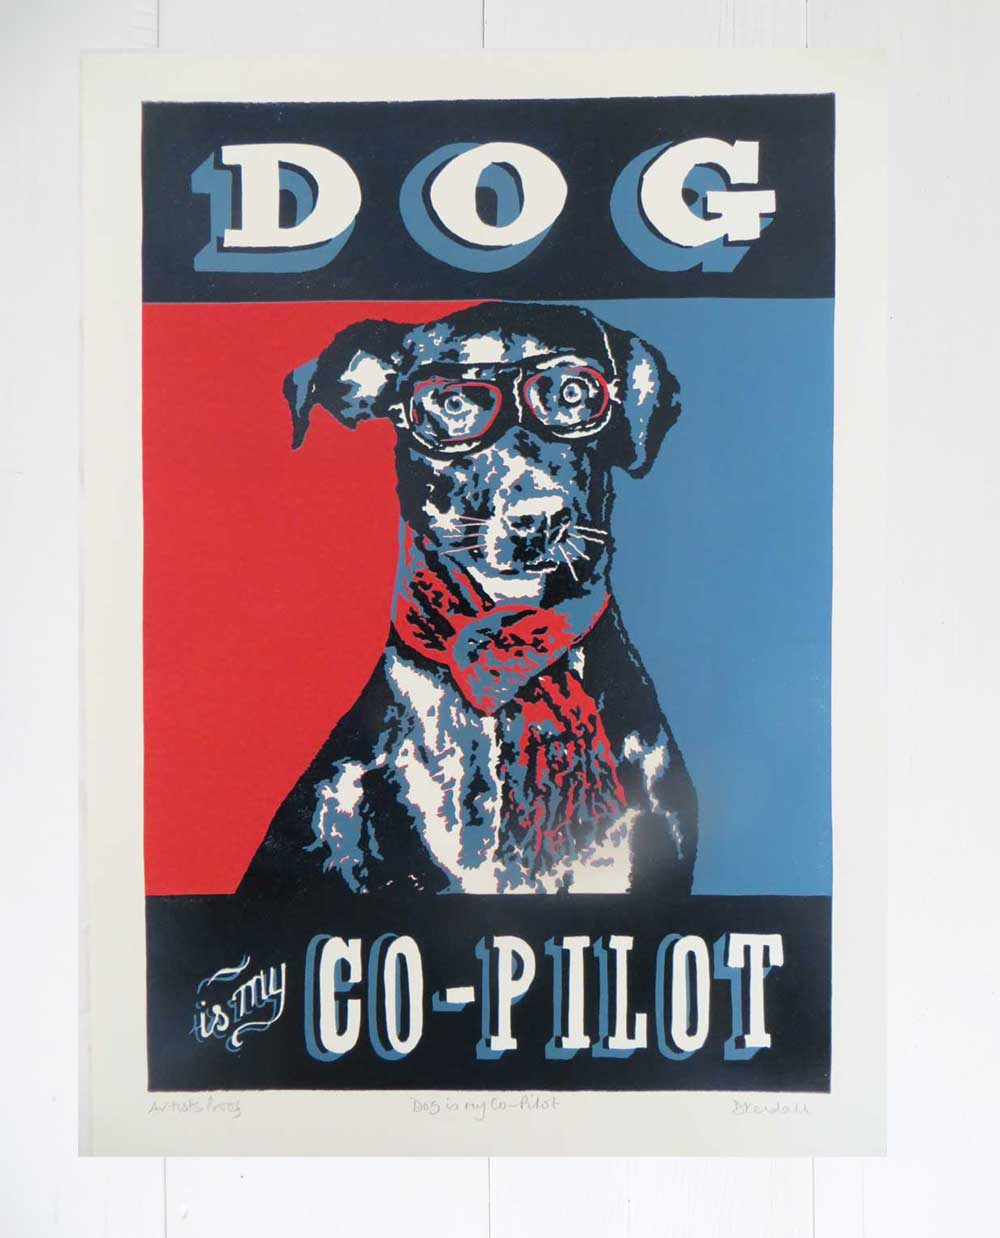 Original Gift for Dog Lovers & Pilots by The Enlightened Hound